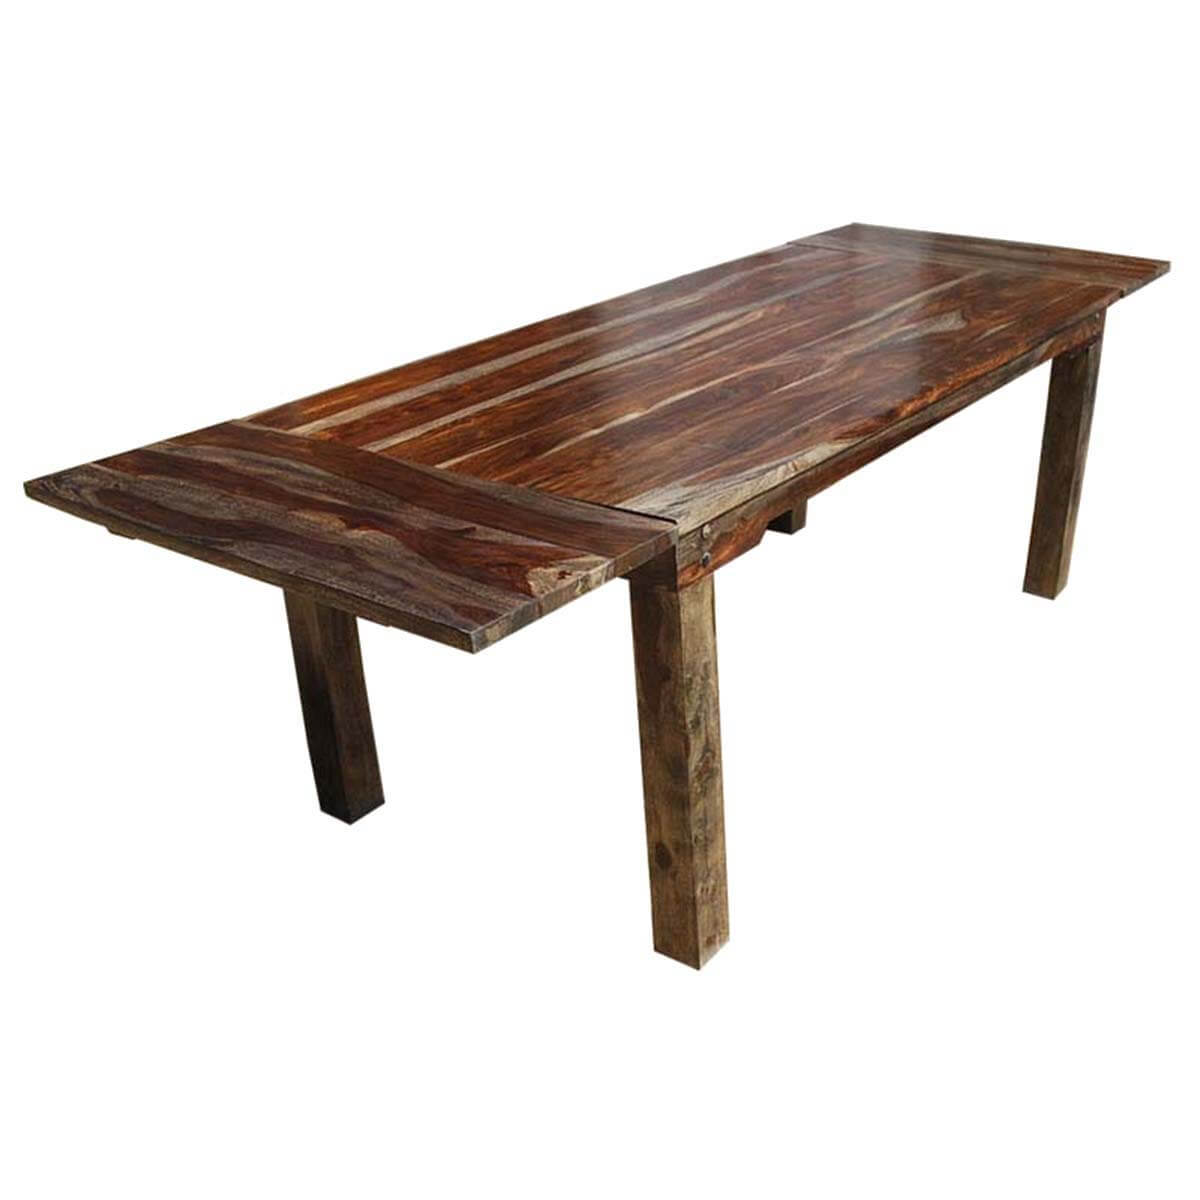 Rustic large cariboo dining table w extensions for Biggest dining table